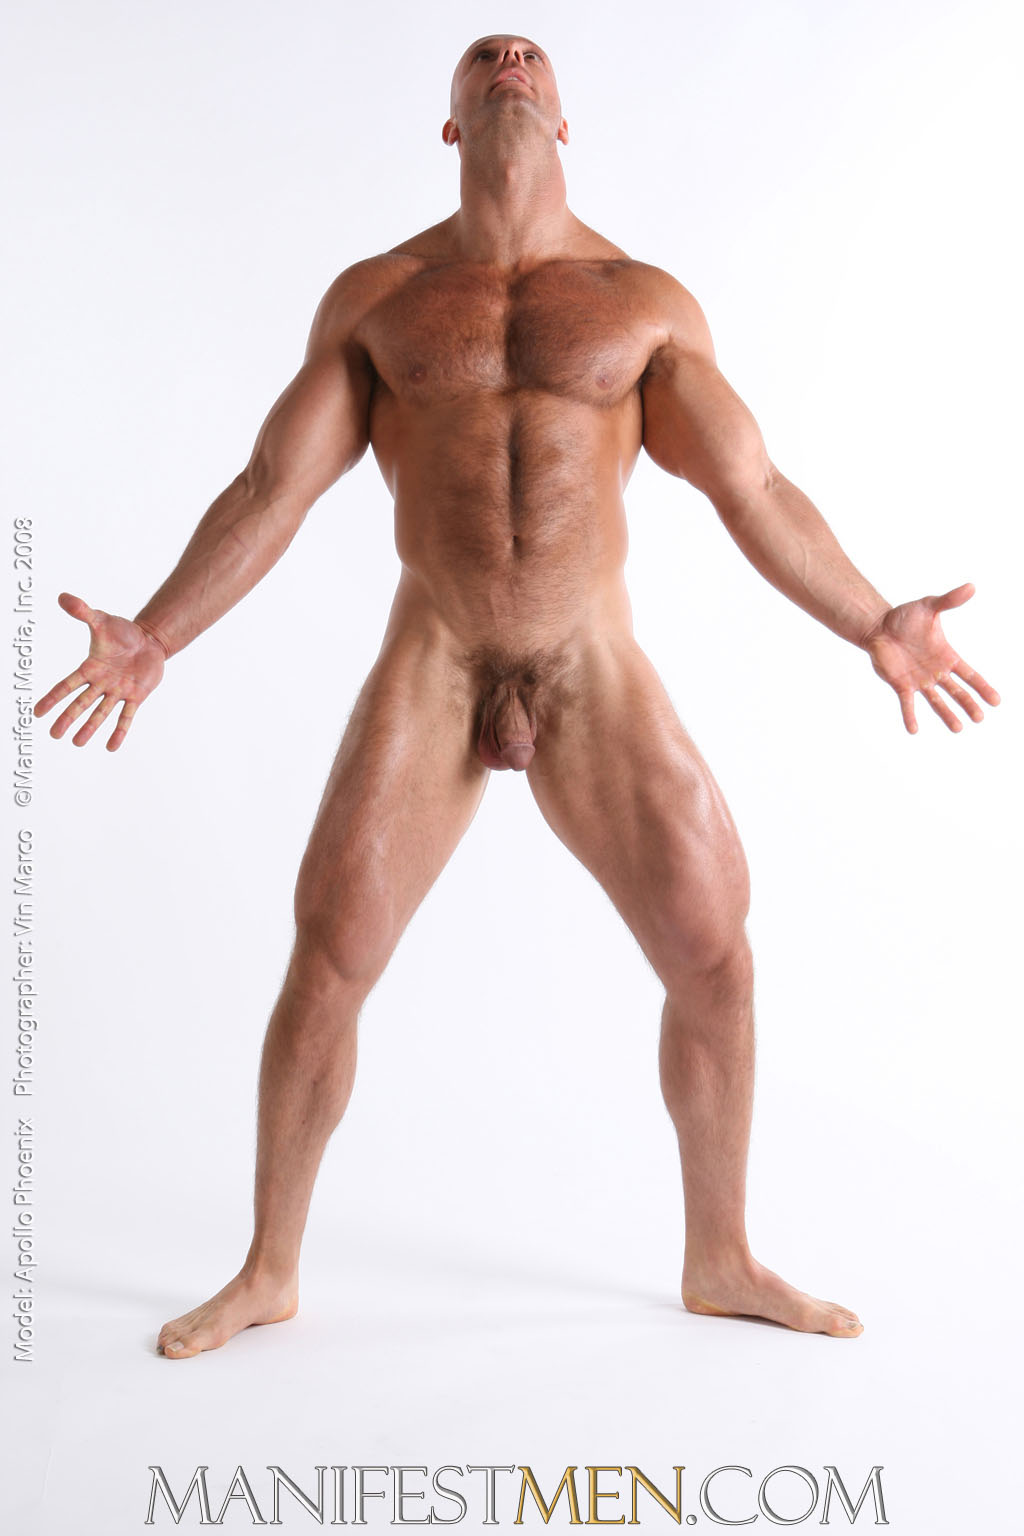 Huge Bodybuilder Poses In The Nude